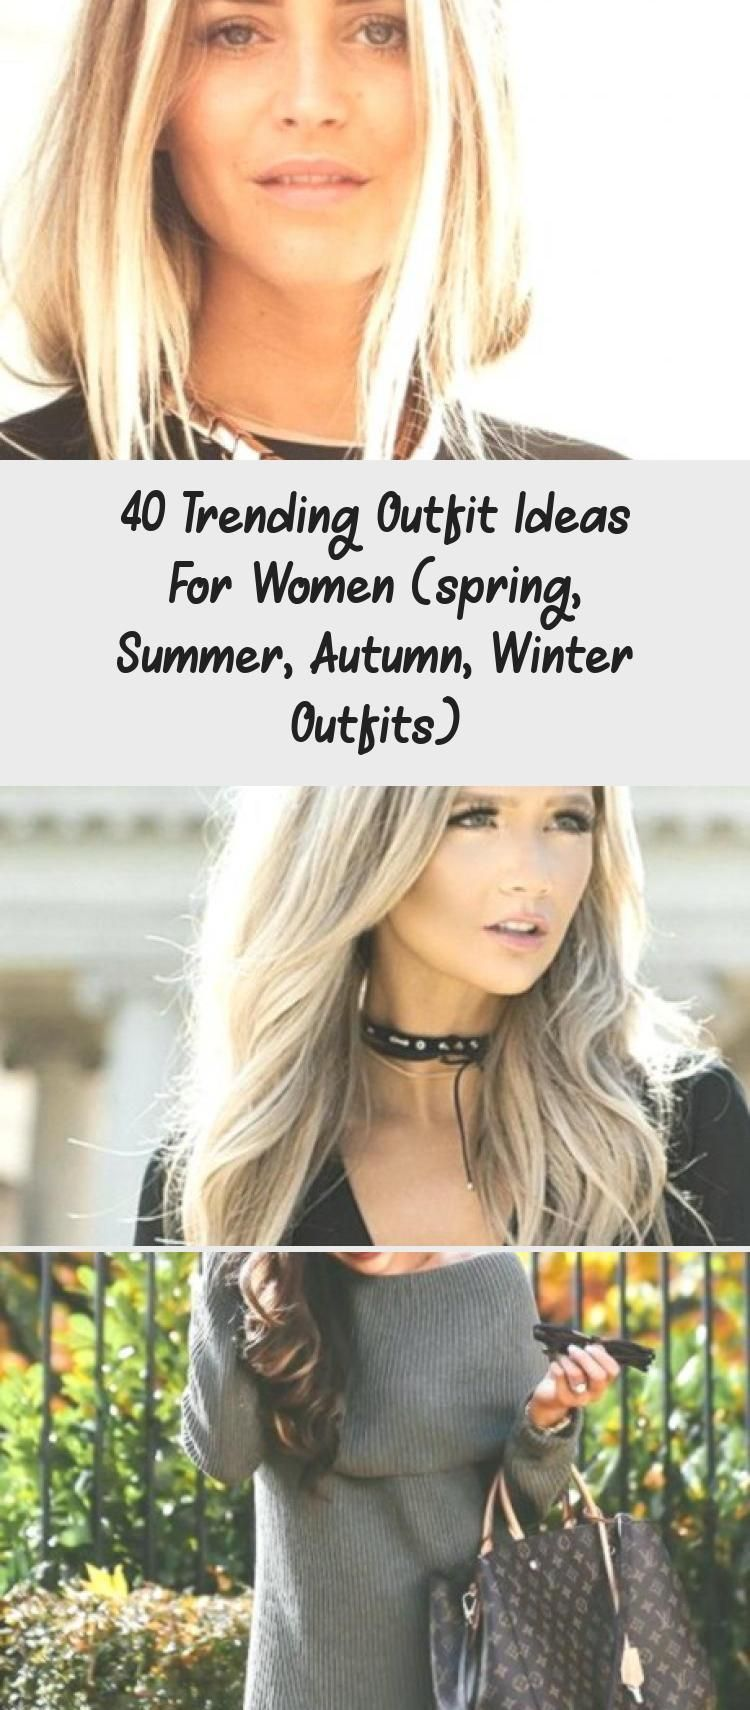 40 Trending Outfit Ideas For Women spring Summer Autumn Winter Outfits 40 Trending Outfit Ideas for Women Spring Summer Autumn Winter Outfits